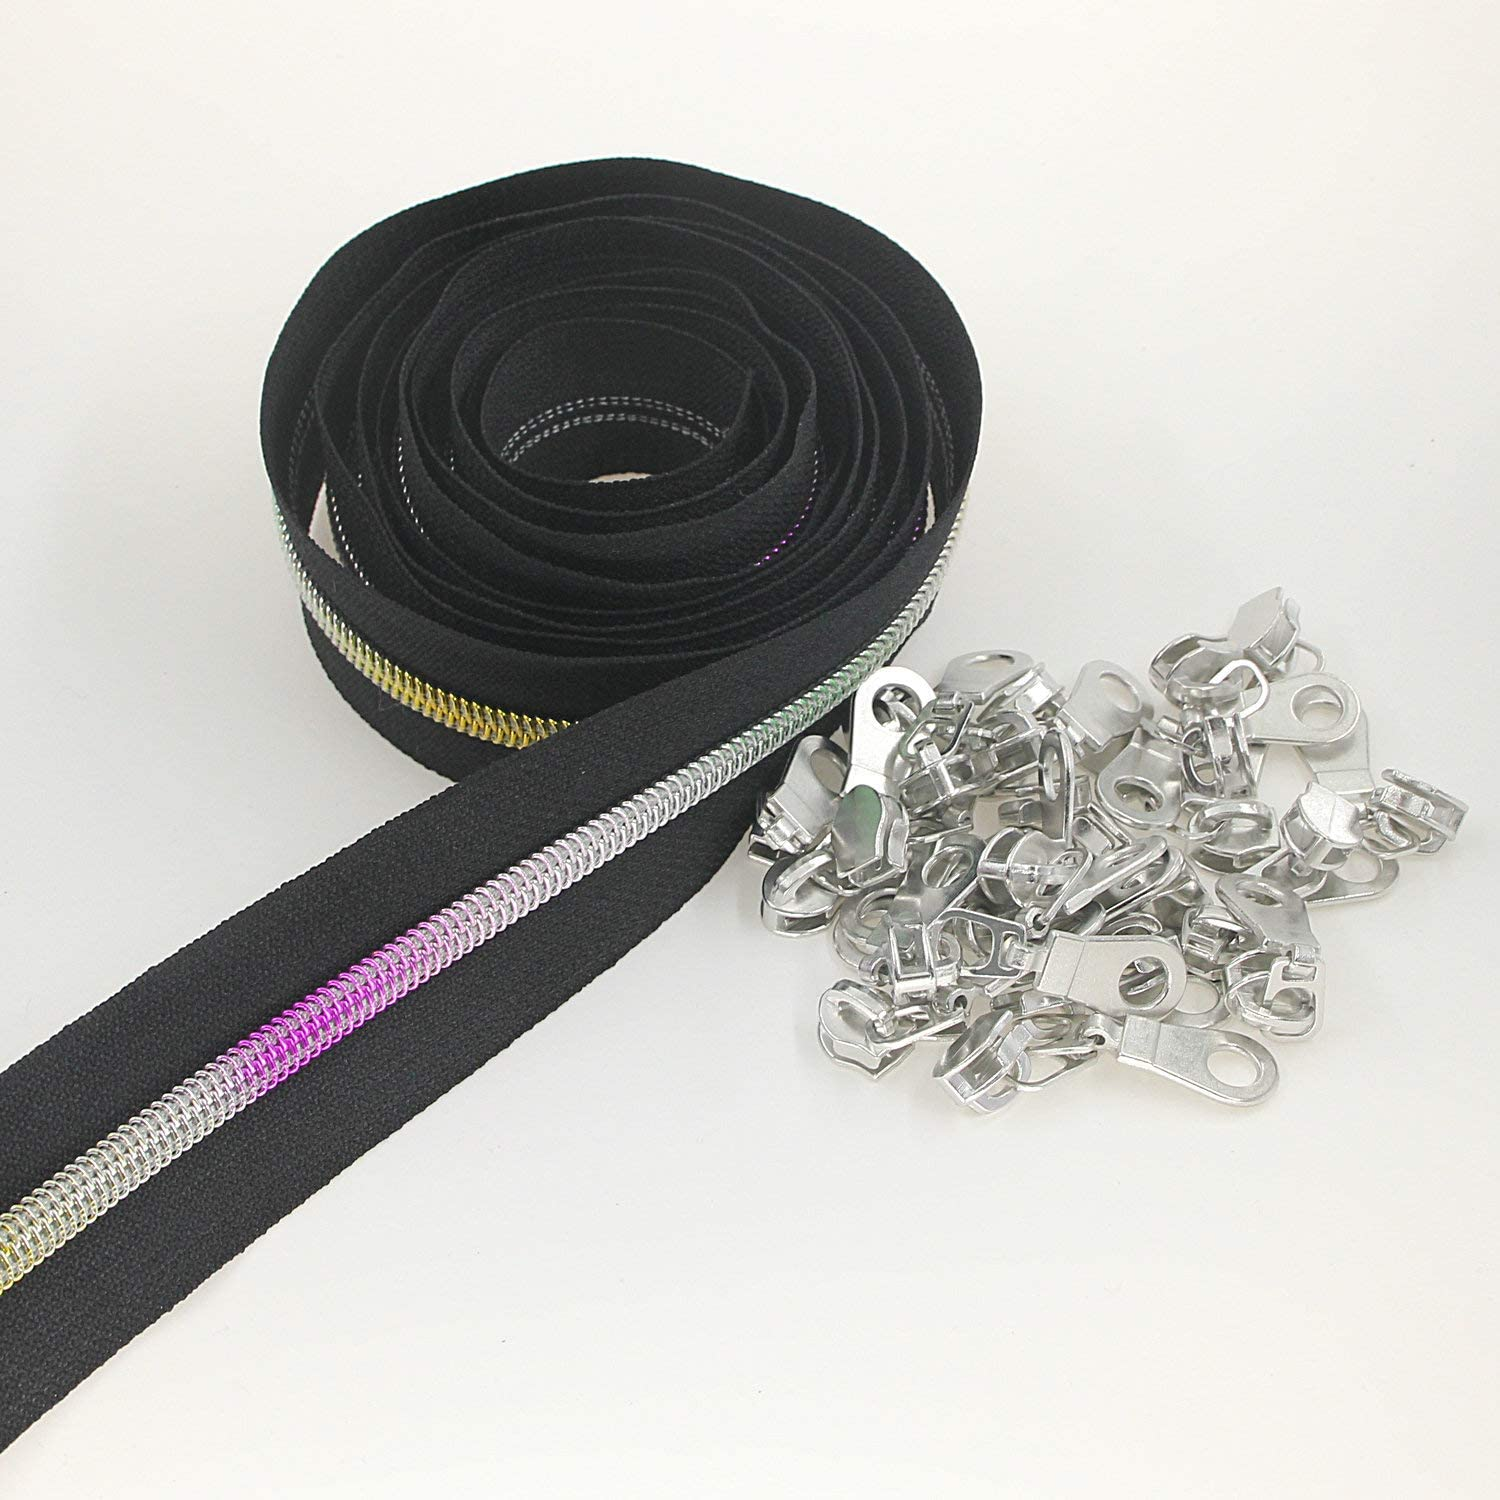 #5 Metallic Nylon Coil Zippers by The Yard Colorful Teeth Zipper Bulk 10 Yards Black Tape with 25pcs Silver Sliders for DIY Sewing Tailor Craft Bag Leekayer(Black)